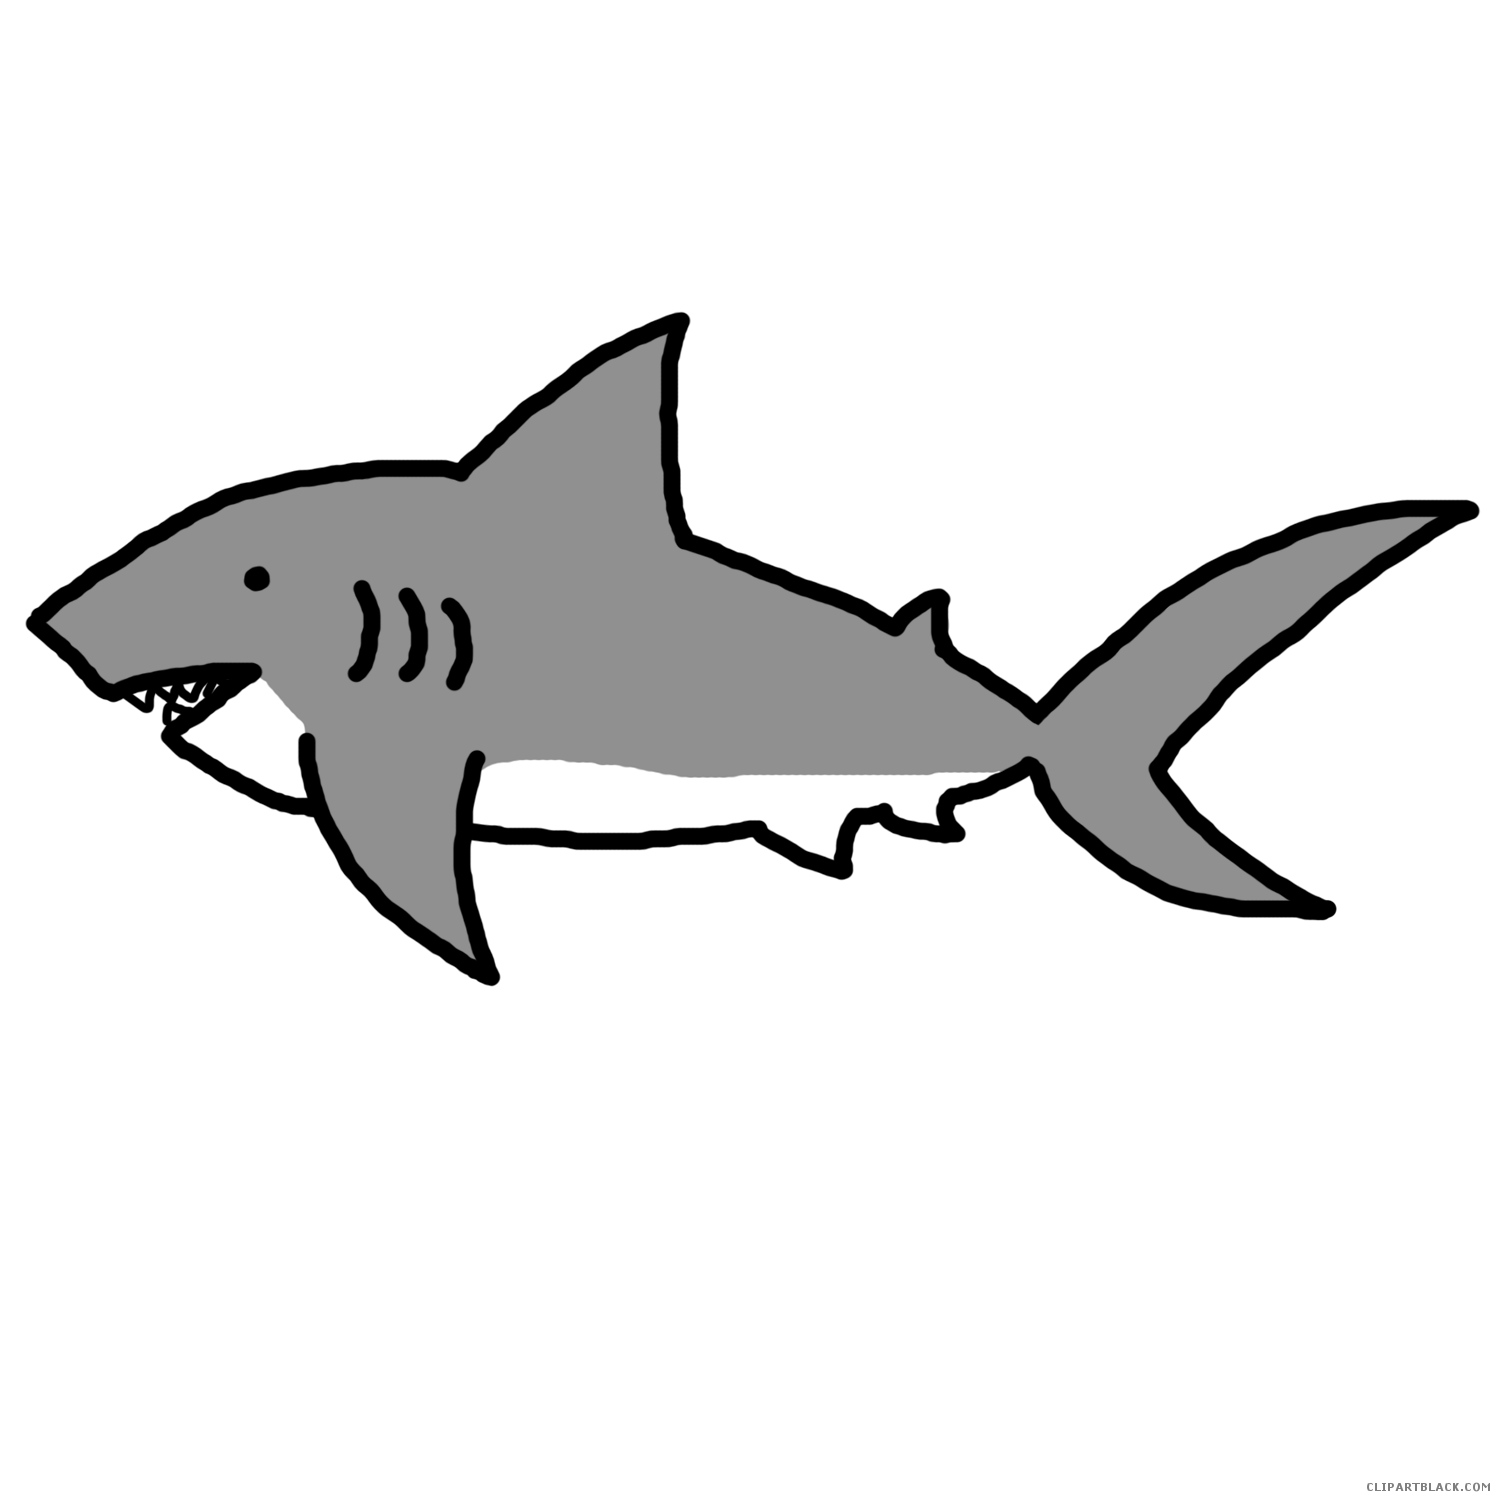 Clipart free shark, Clipart free shark Transparent FREE for.